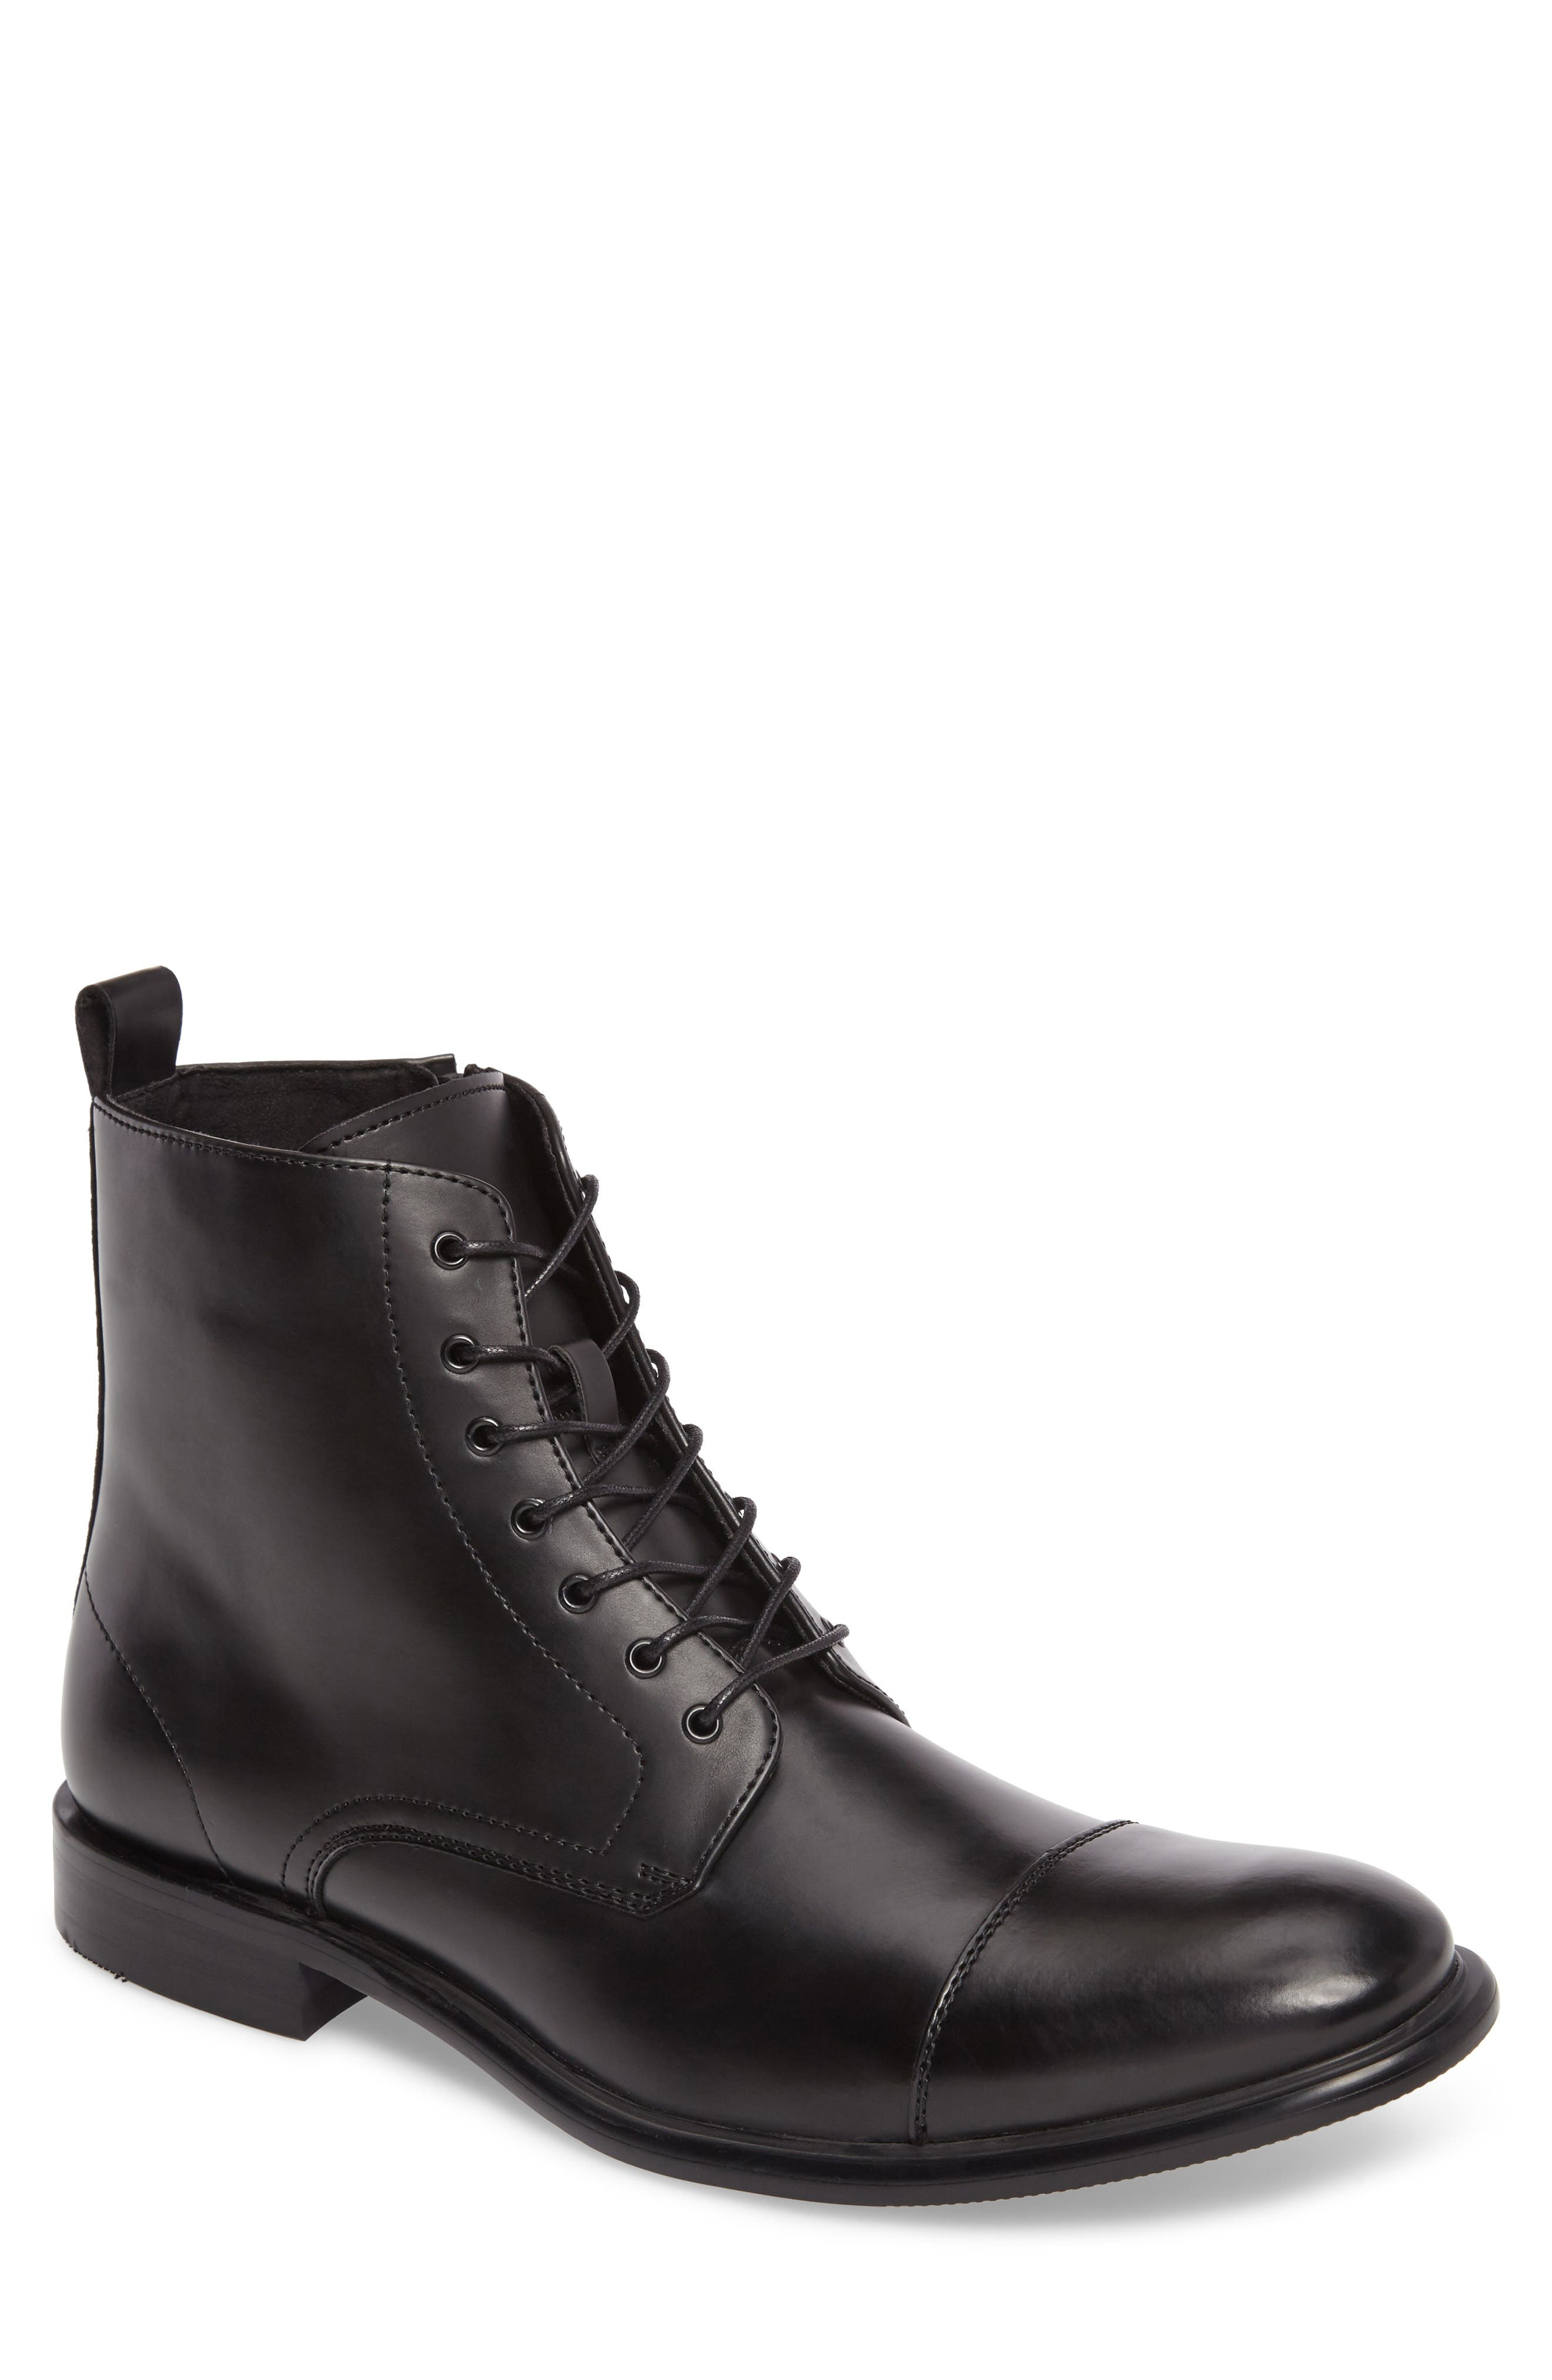 Kenneth Cole Reaction Cap Toe Boot,                         Main,                         color,